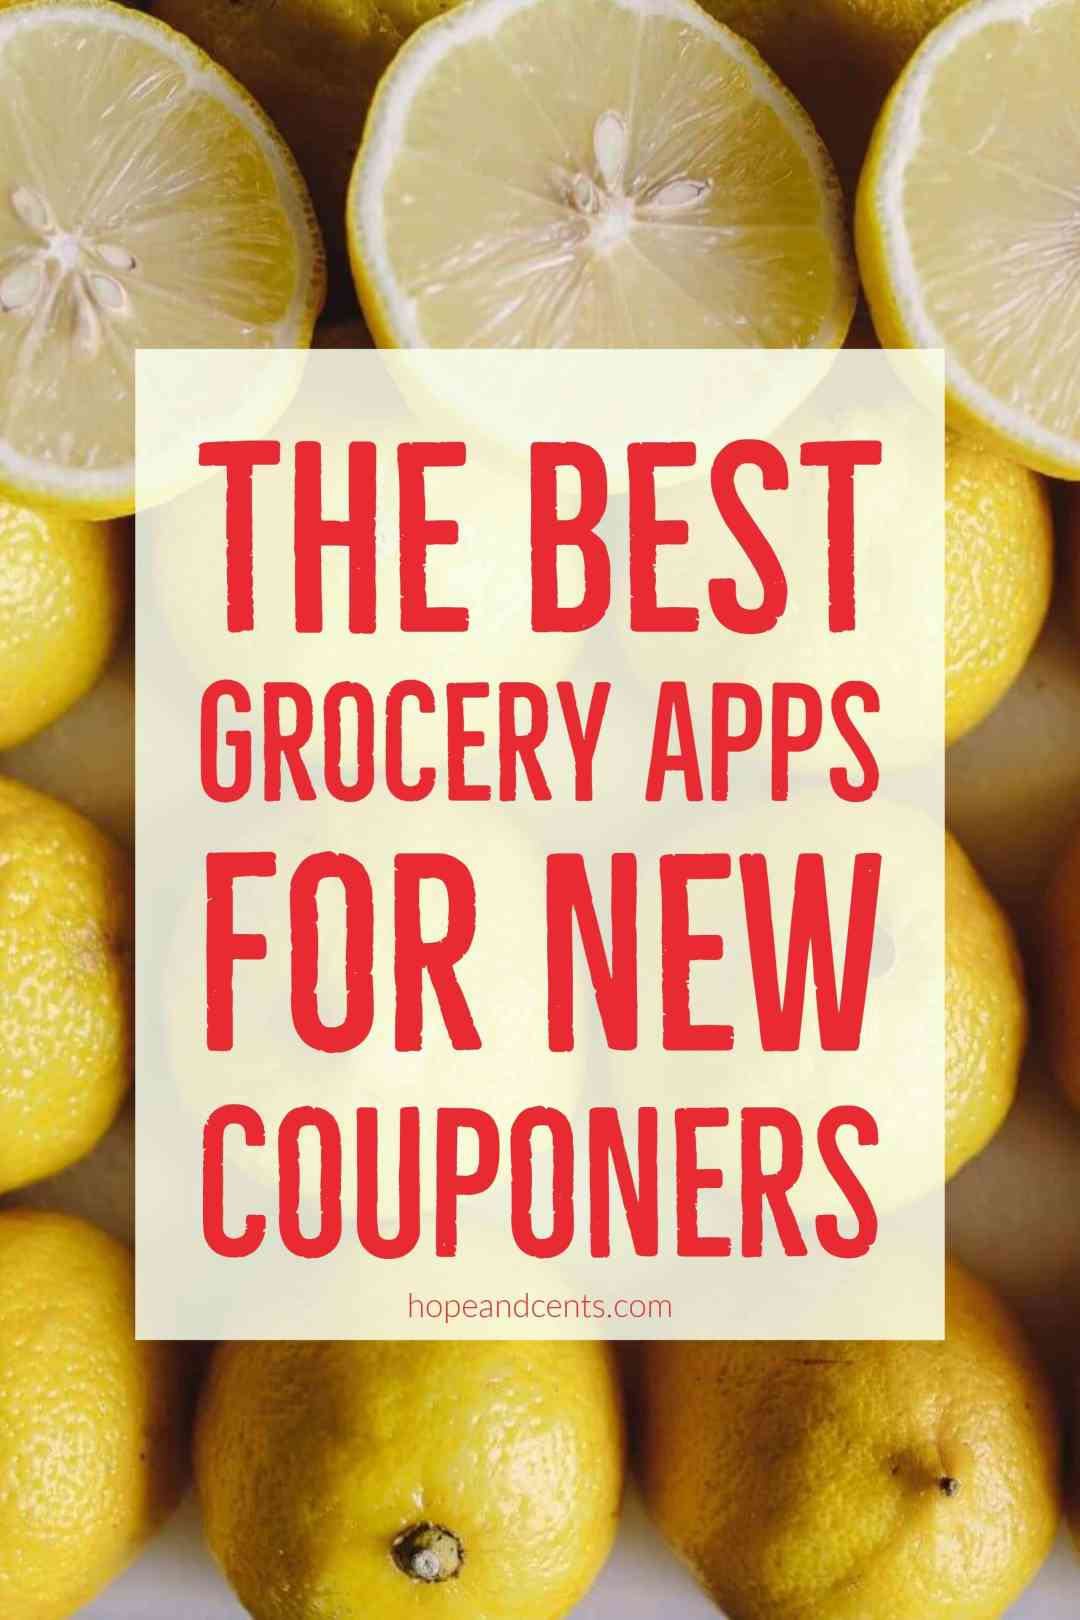 If you're new to couponing or are trying to save at the supermarket, the number of grocery apps and ways to save can be a little overwhelming. A few apps stand out as the best for new couponers.